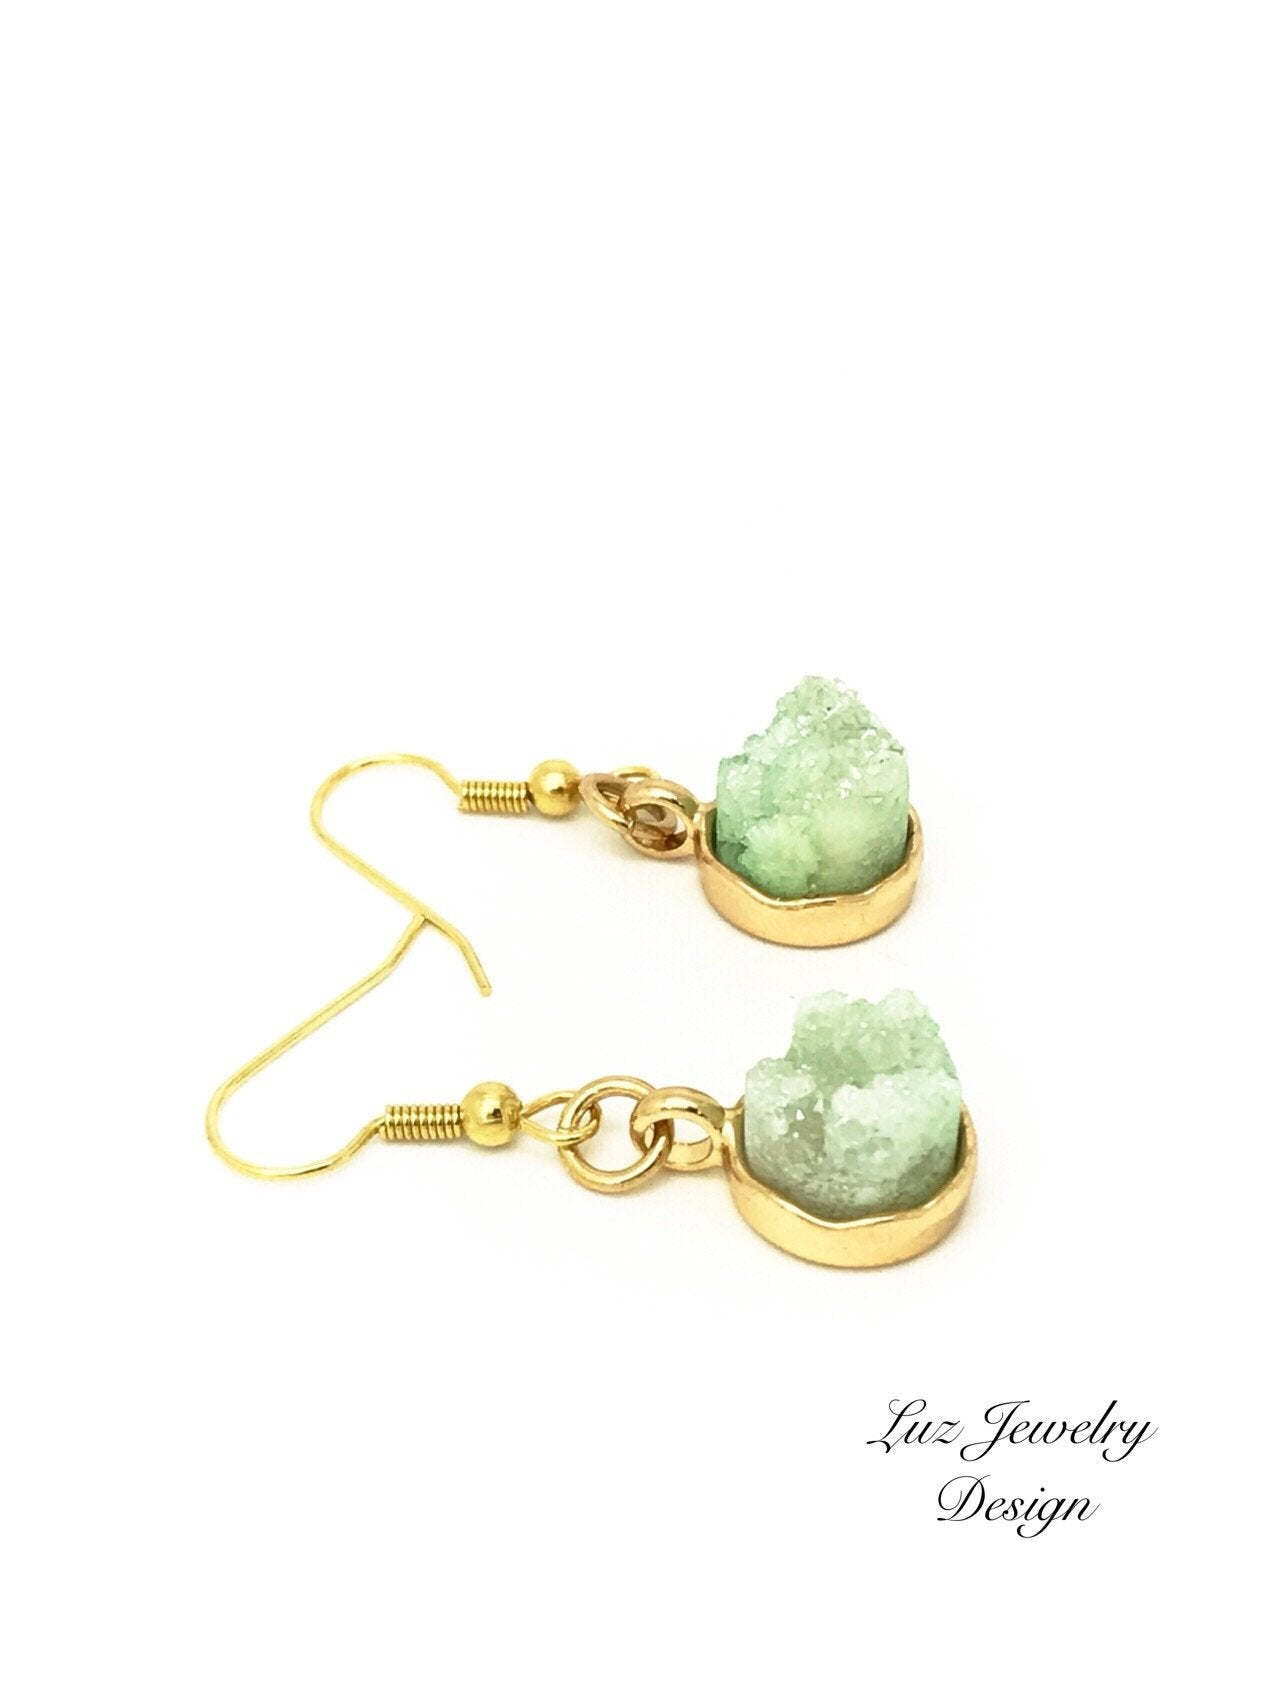 Mint Green Druzy Earrings, gold plated earrings - handcrafted Jewelry Luzjewelrydesign